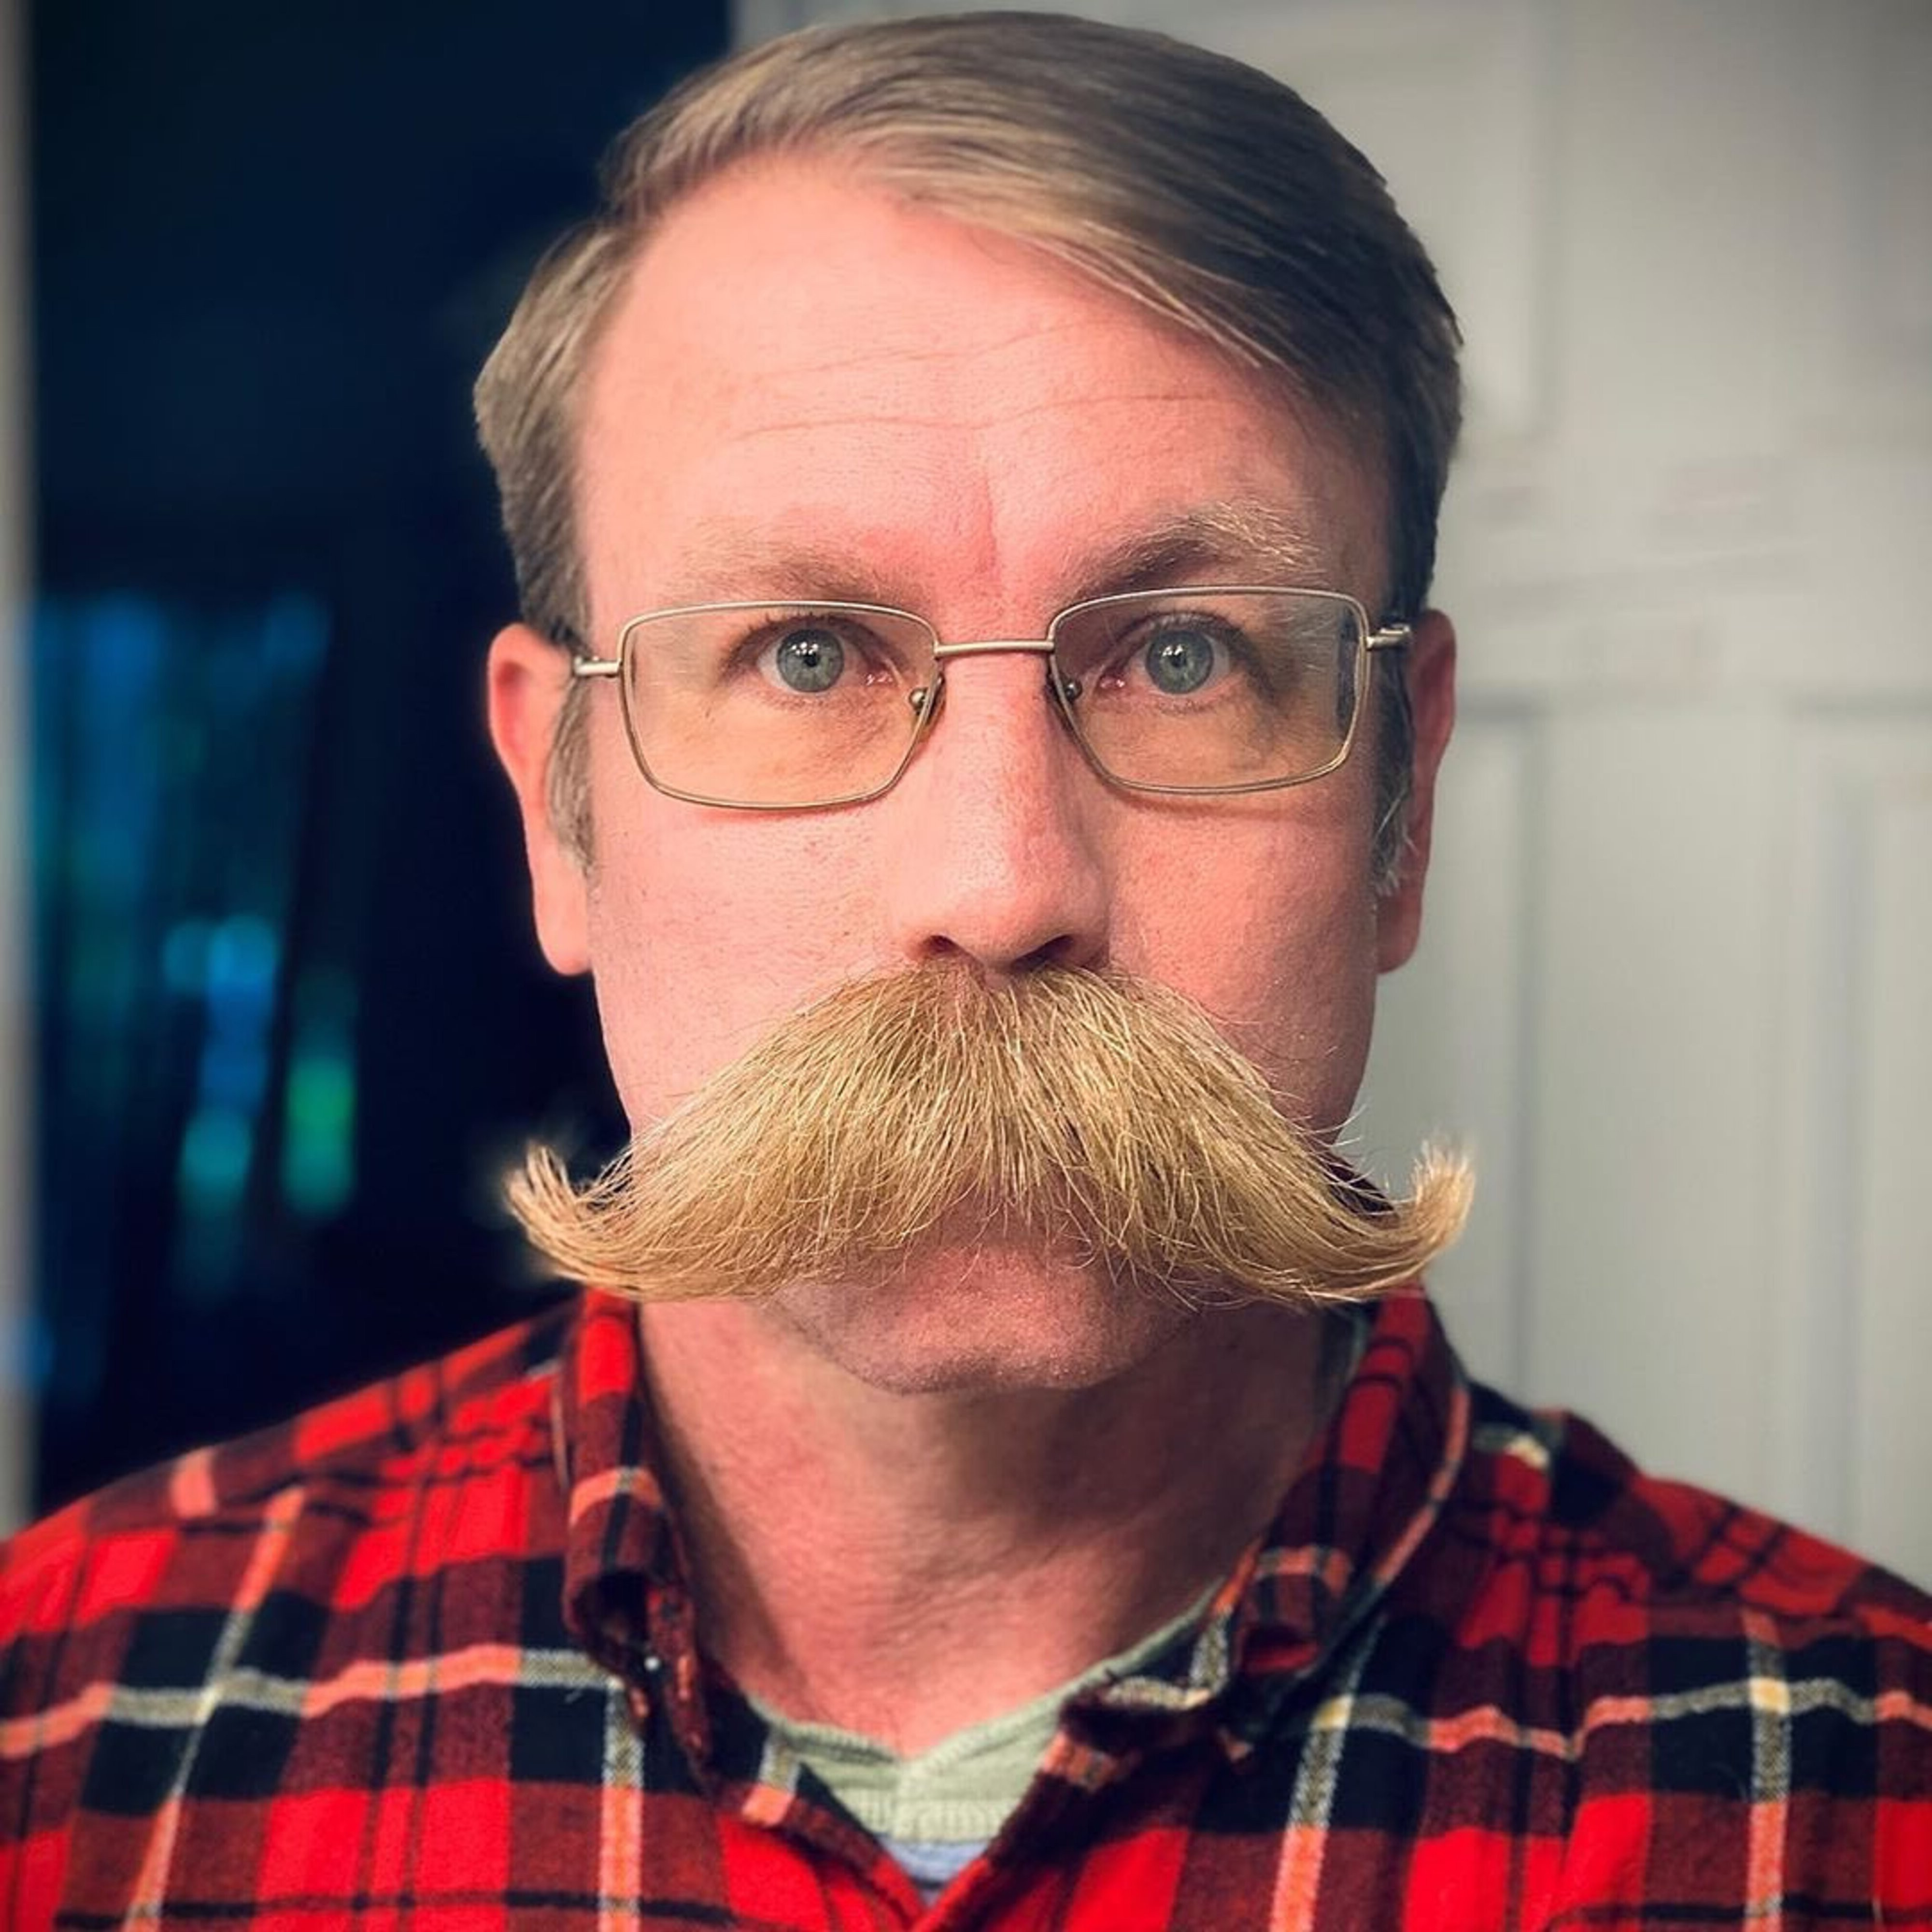 Walrus handlebar mustache for men.